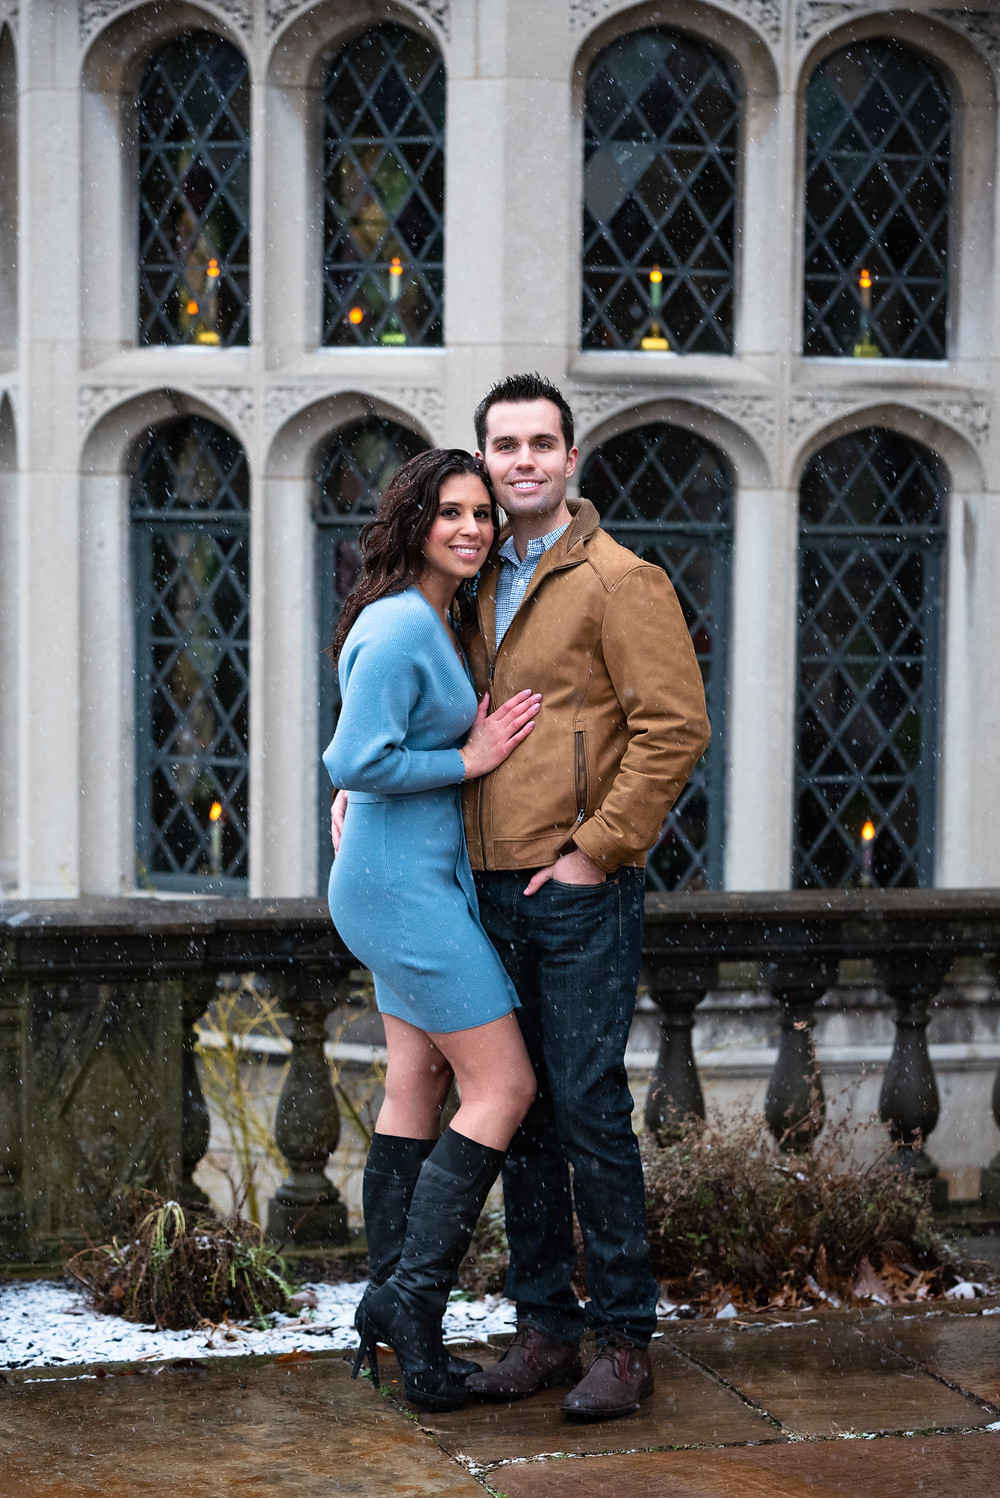 Winter engagement session at Hartwood Acres Mansion in Pittsburgh